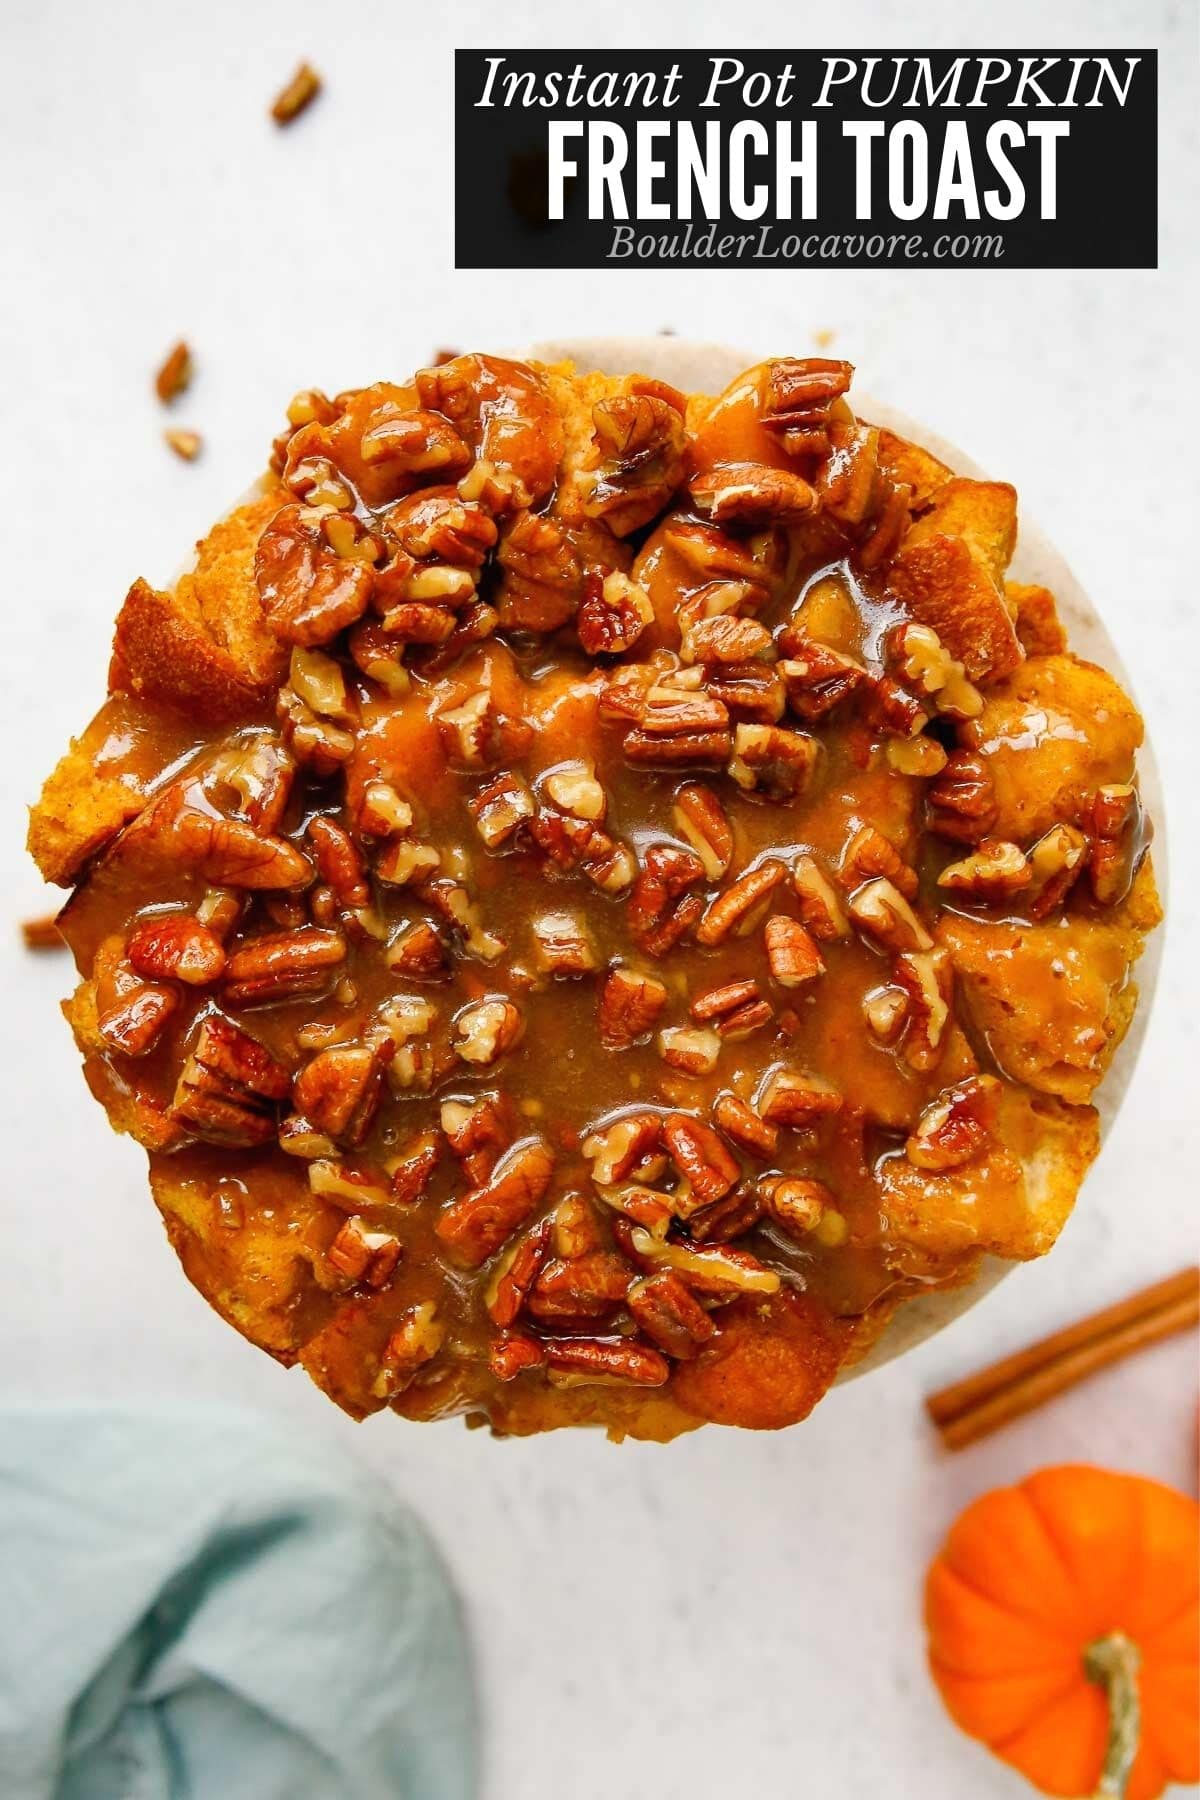 Pumpkin French Toast casserole title image